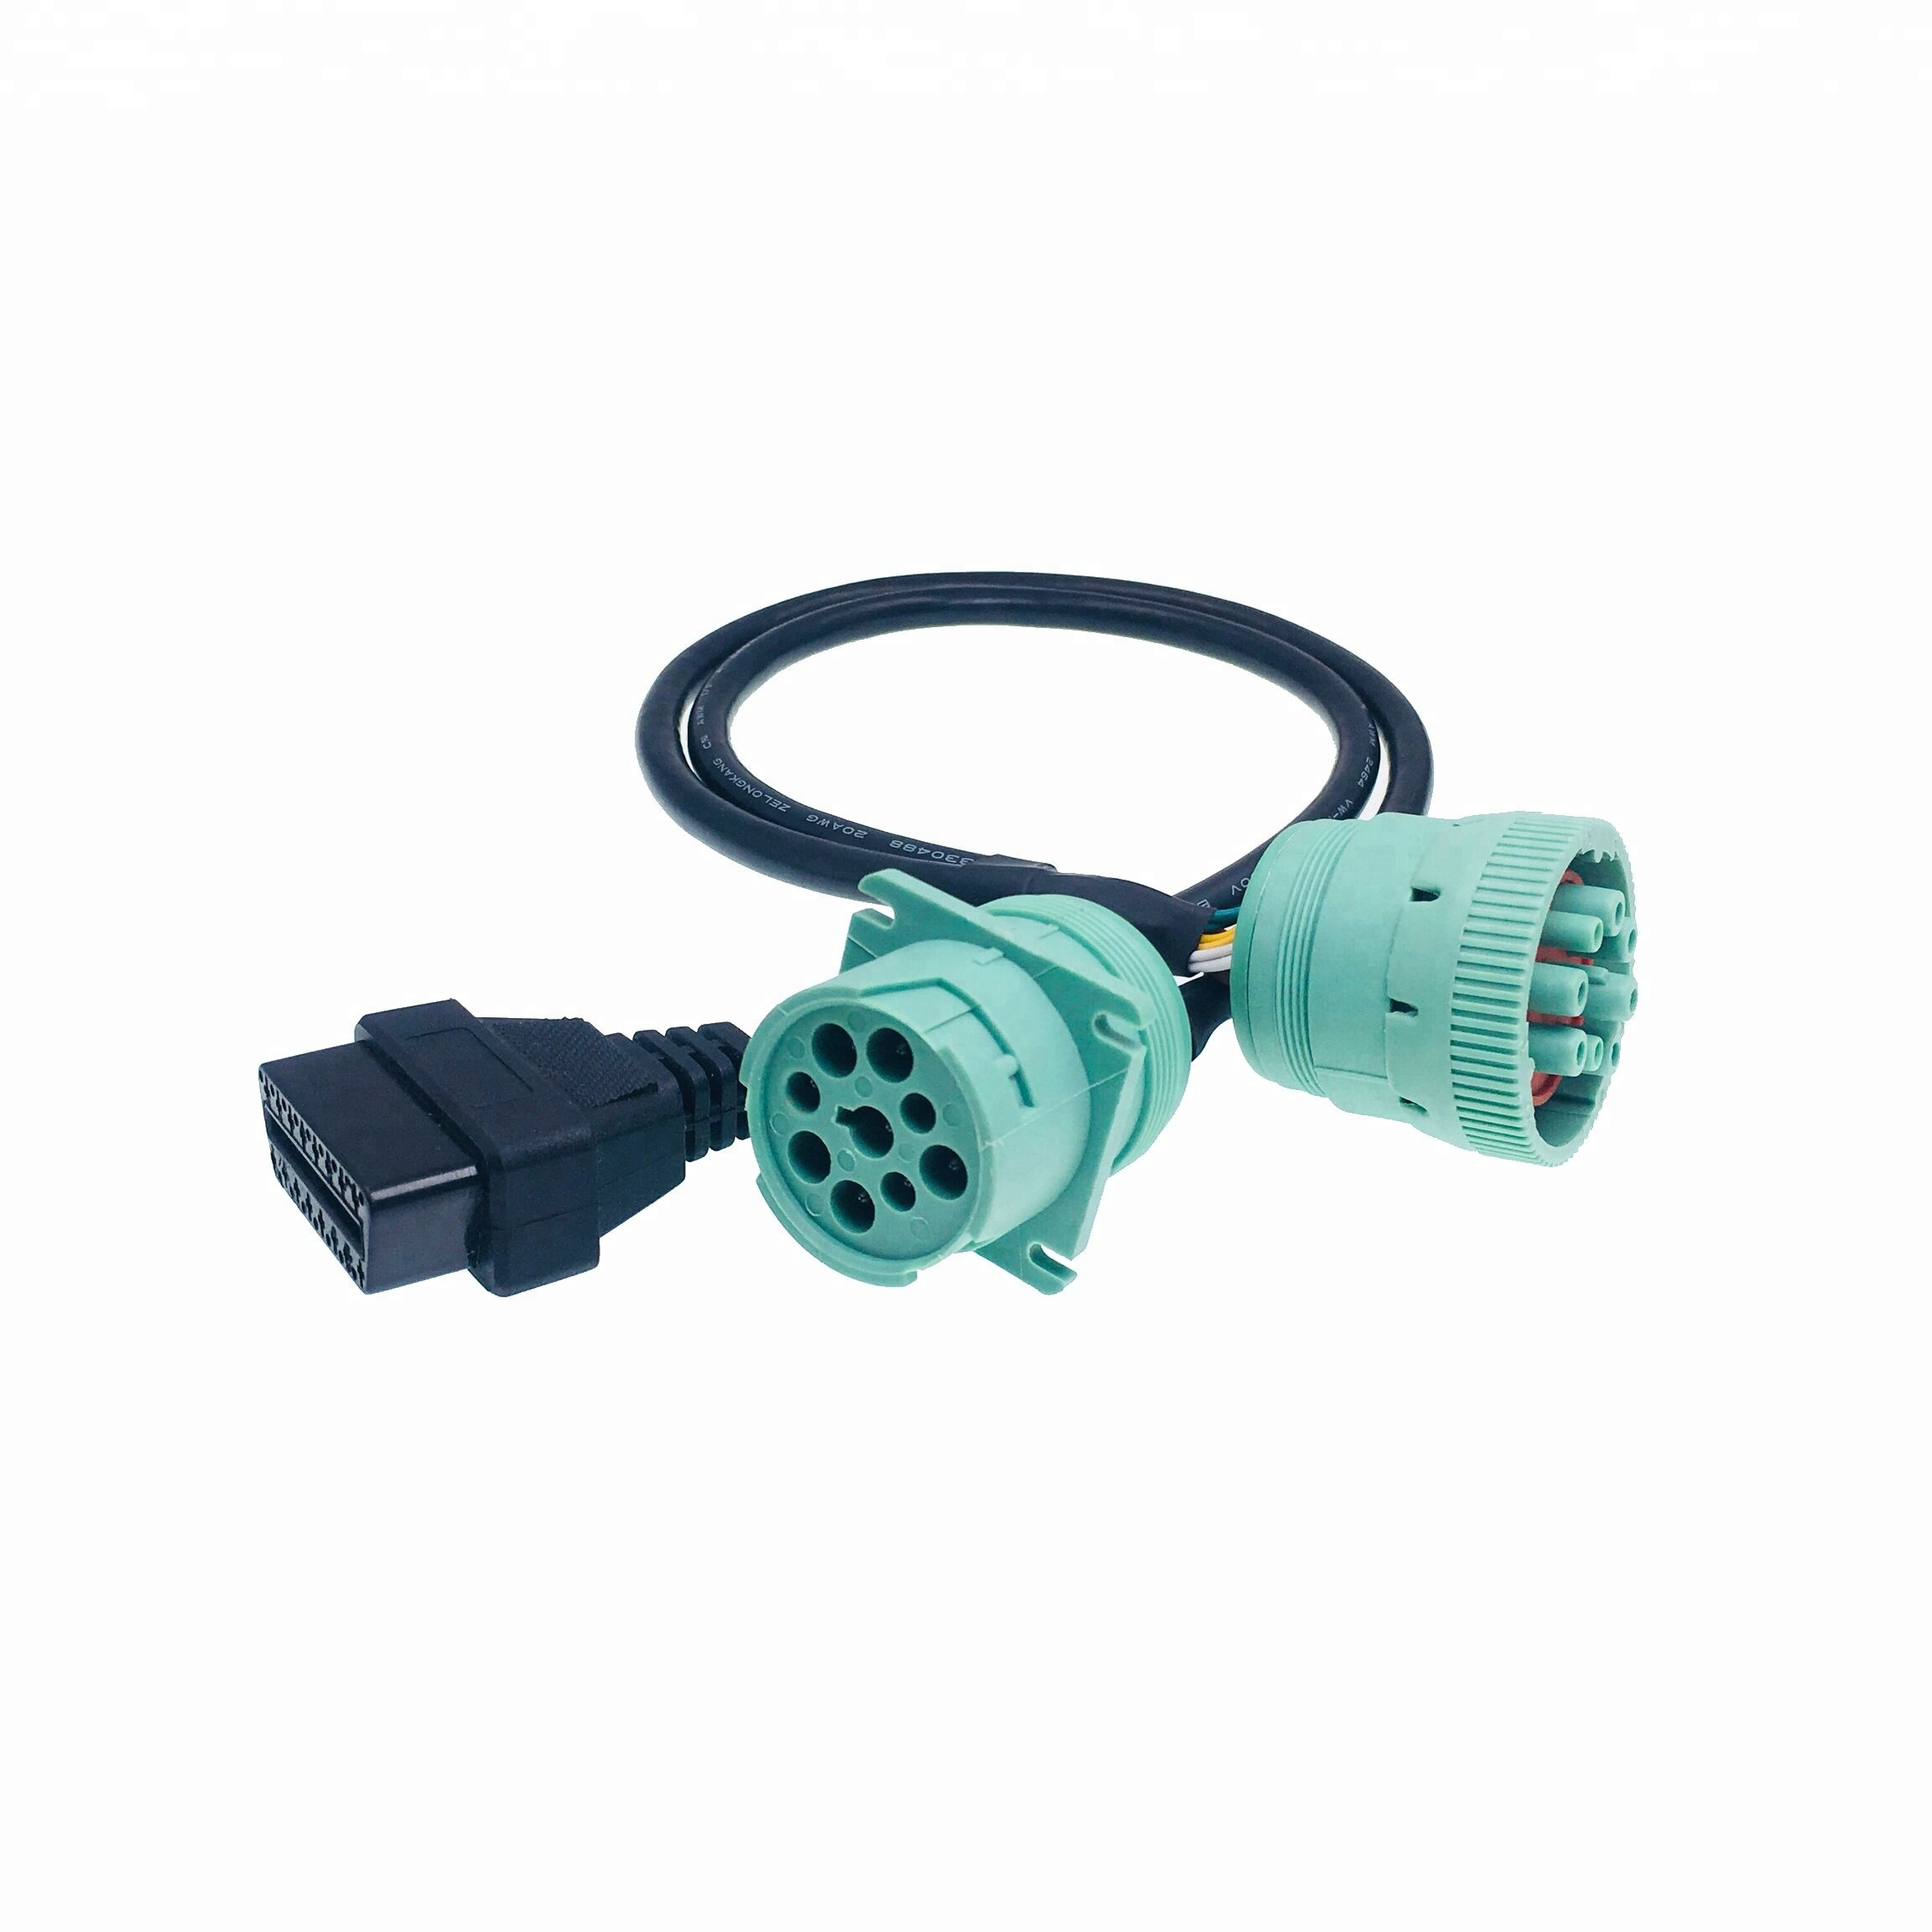 Truck Tool Obd2 Wire Harness J1939 Custom Green Connector Obd Diagnostic  Cars - Buy J1939 Obd2,J1939 Green Connector,J1939 Connector Product on  Alibaba.com